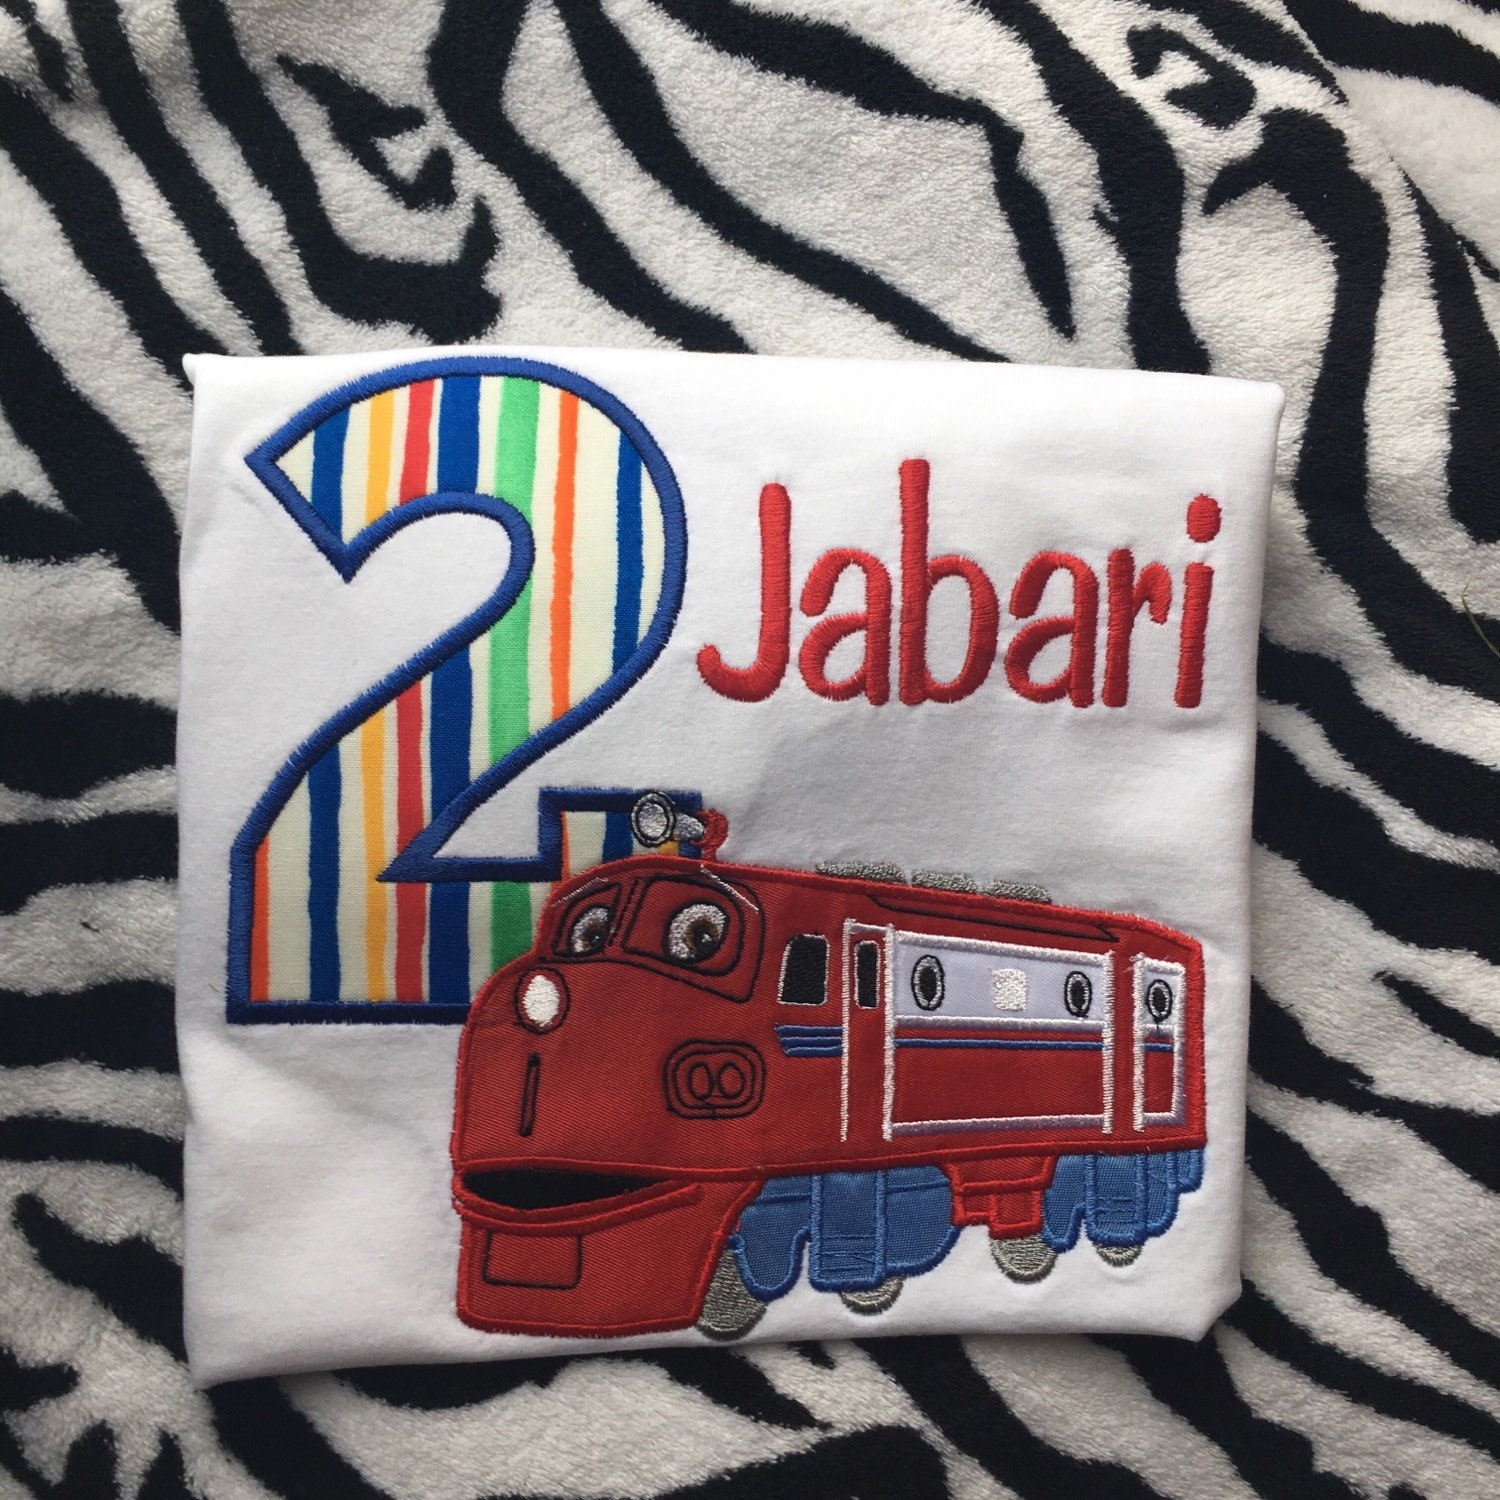 Favorite Embroidery Designs besides DesignGallery also In memory poem together with Personalized Wilson Chuggington Birthday besides Personalized Brewster Chuggington. on dad double applique design